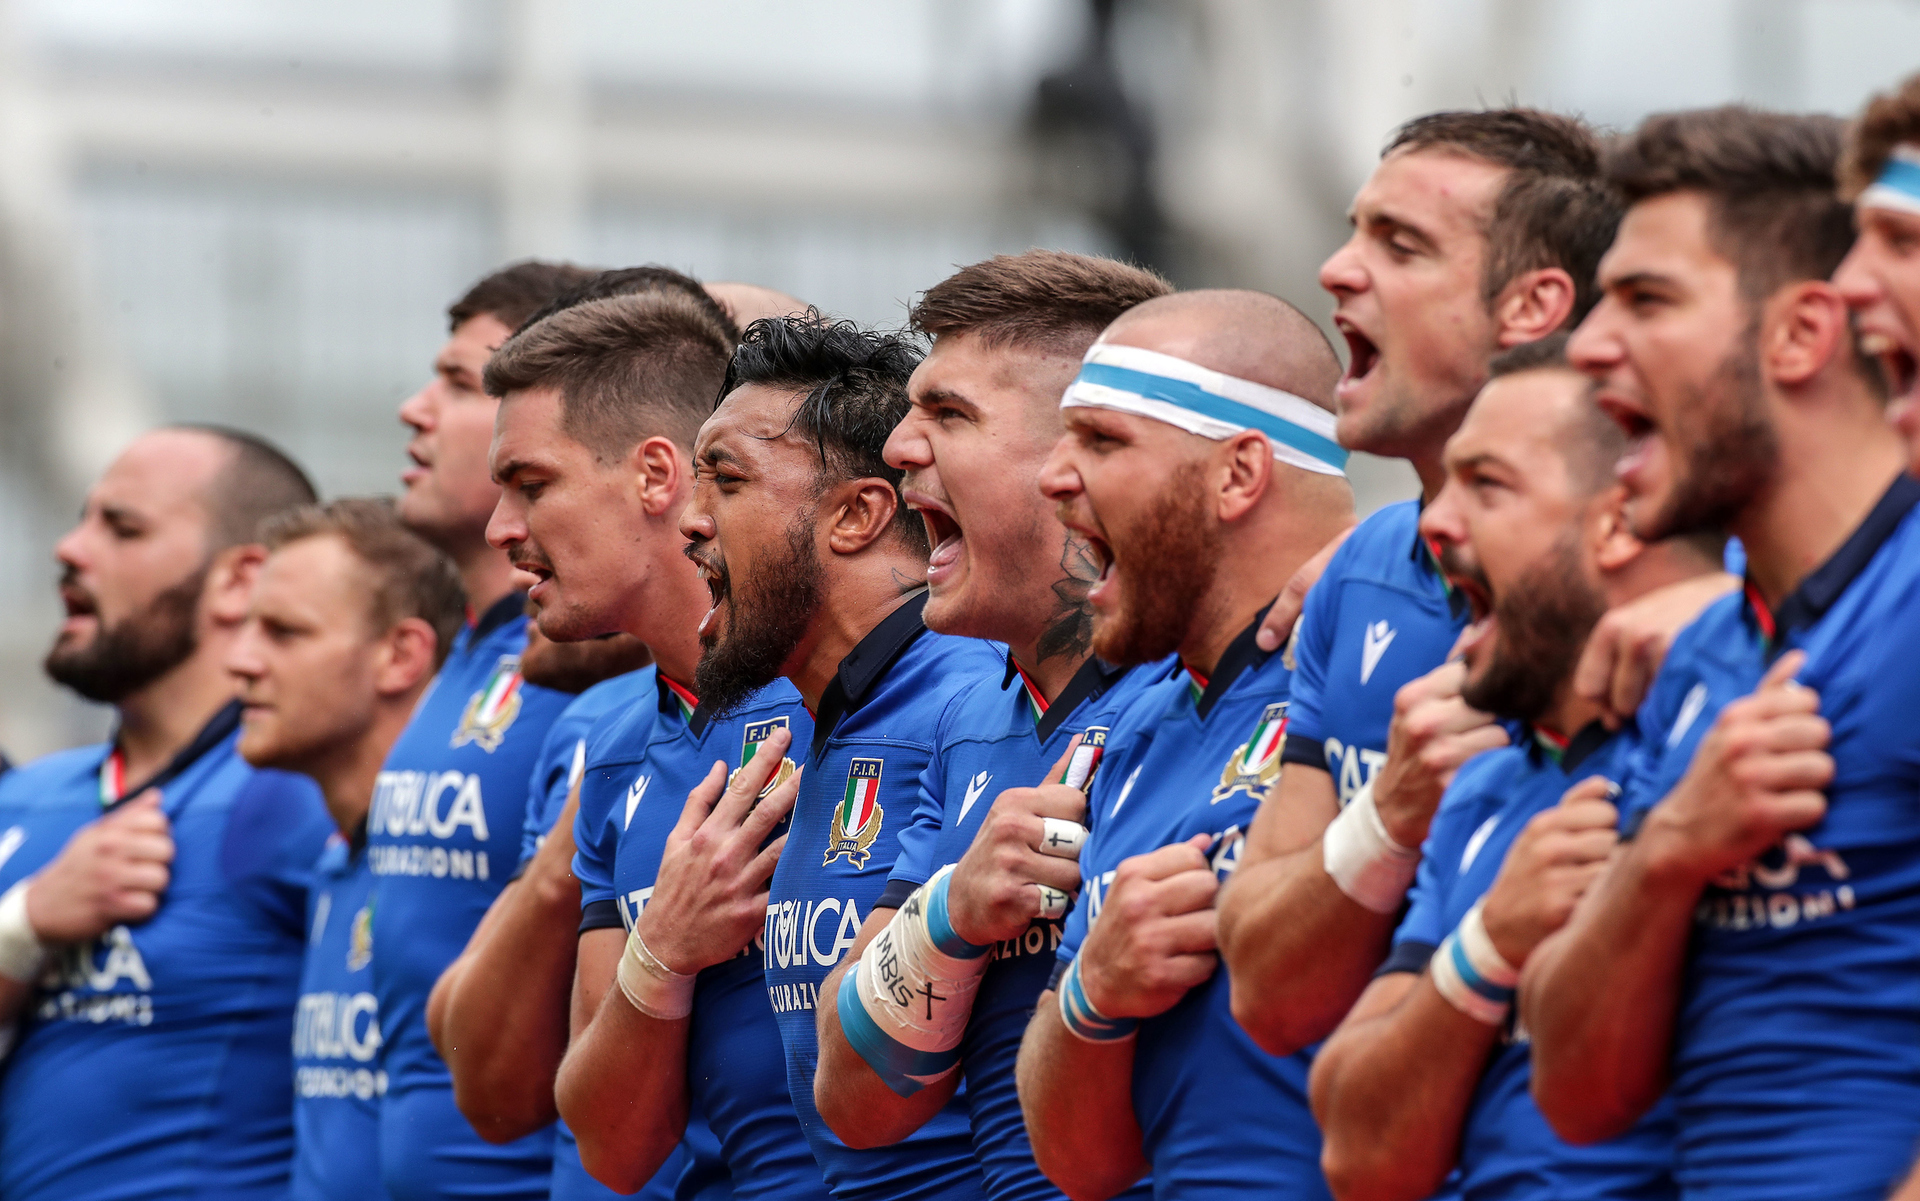 Which is the best national anthem at the 2019 Rugby World Cup?